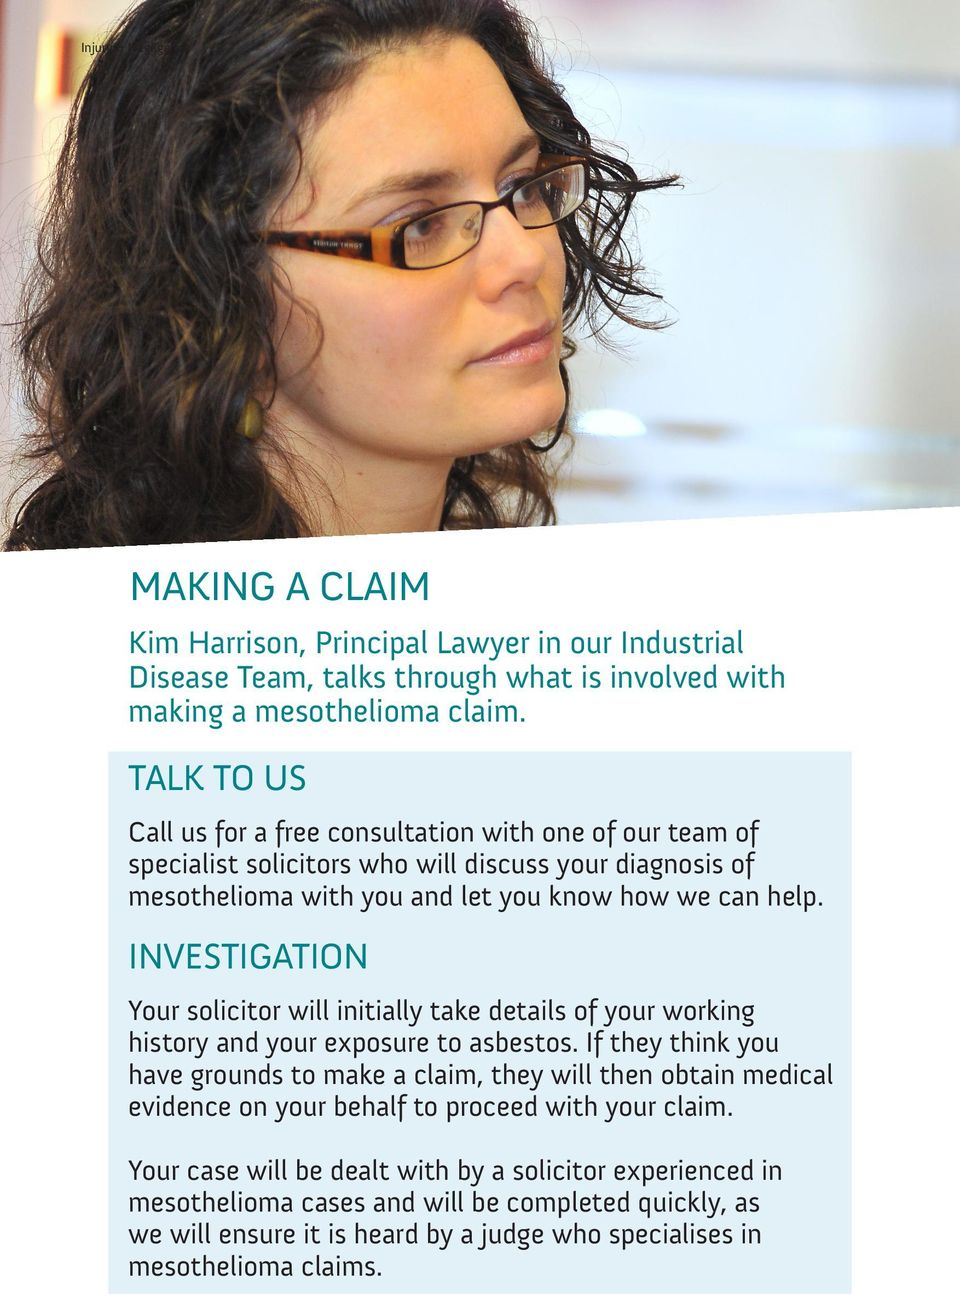 INVESTIGATION Your solicitor will initially take details of your working history and your exposure to asbestos.